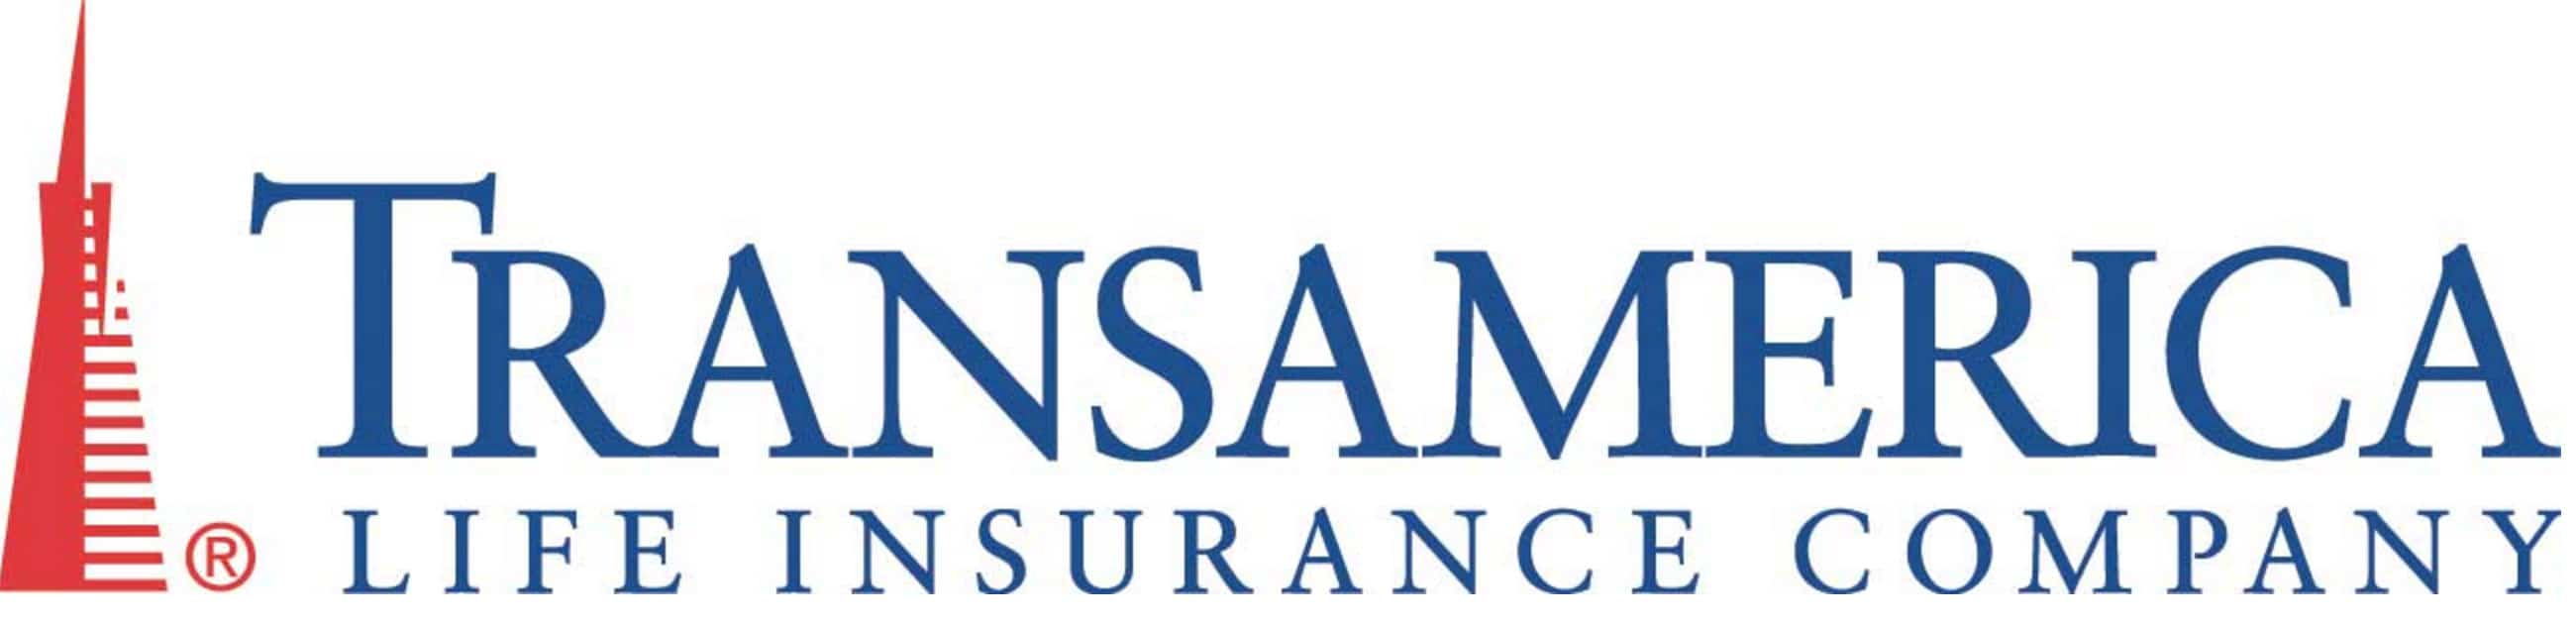 transamerica life insurance reviews photo - 1